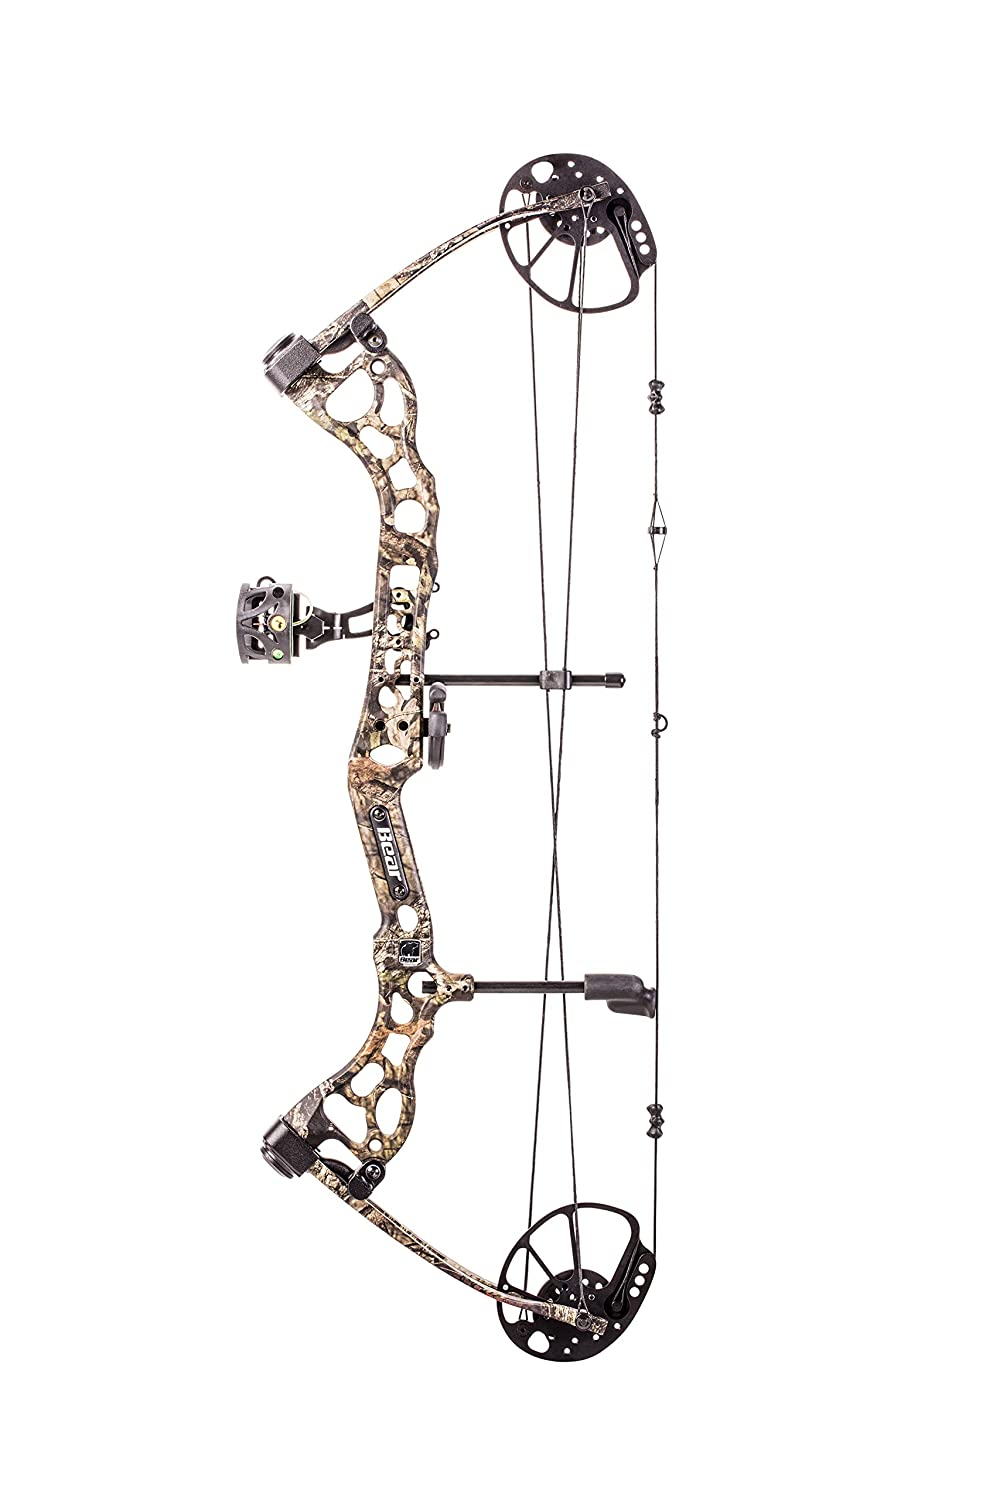 Amazon com : Bear Archery Pledge Compound Bow Includes